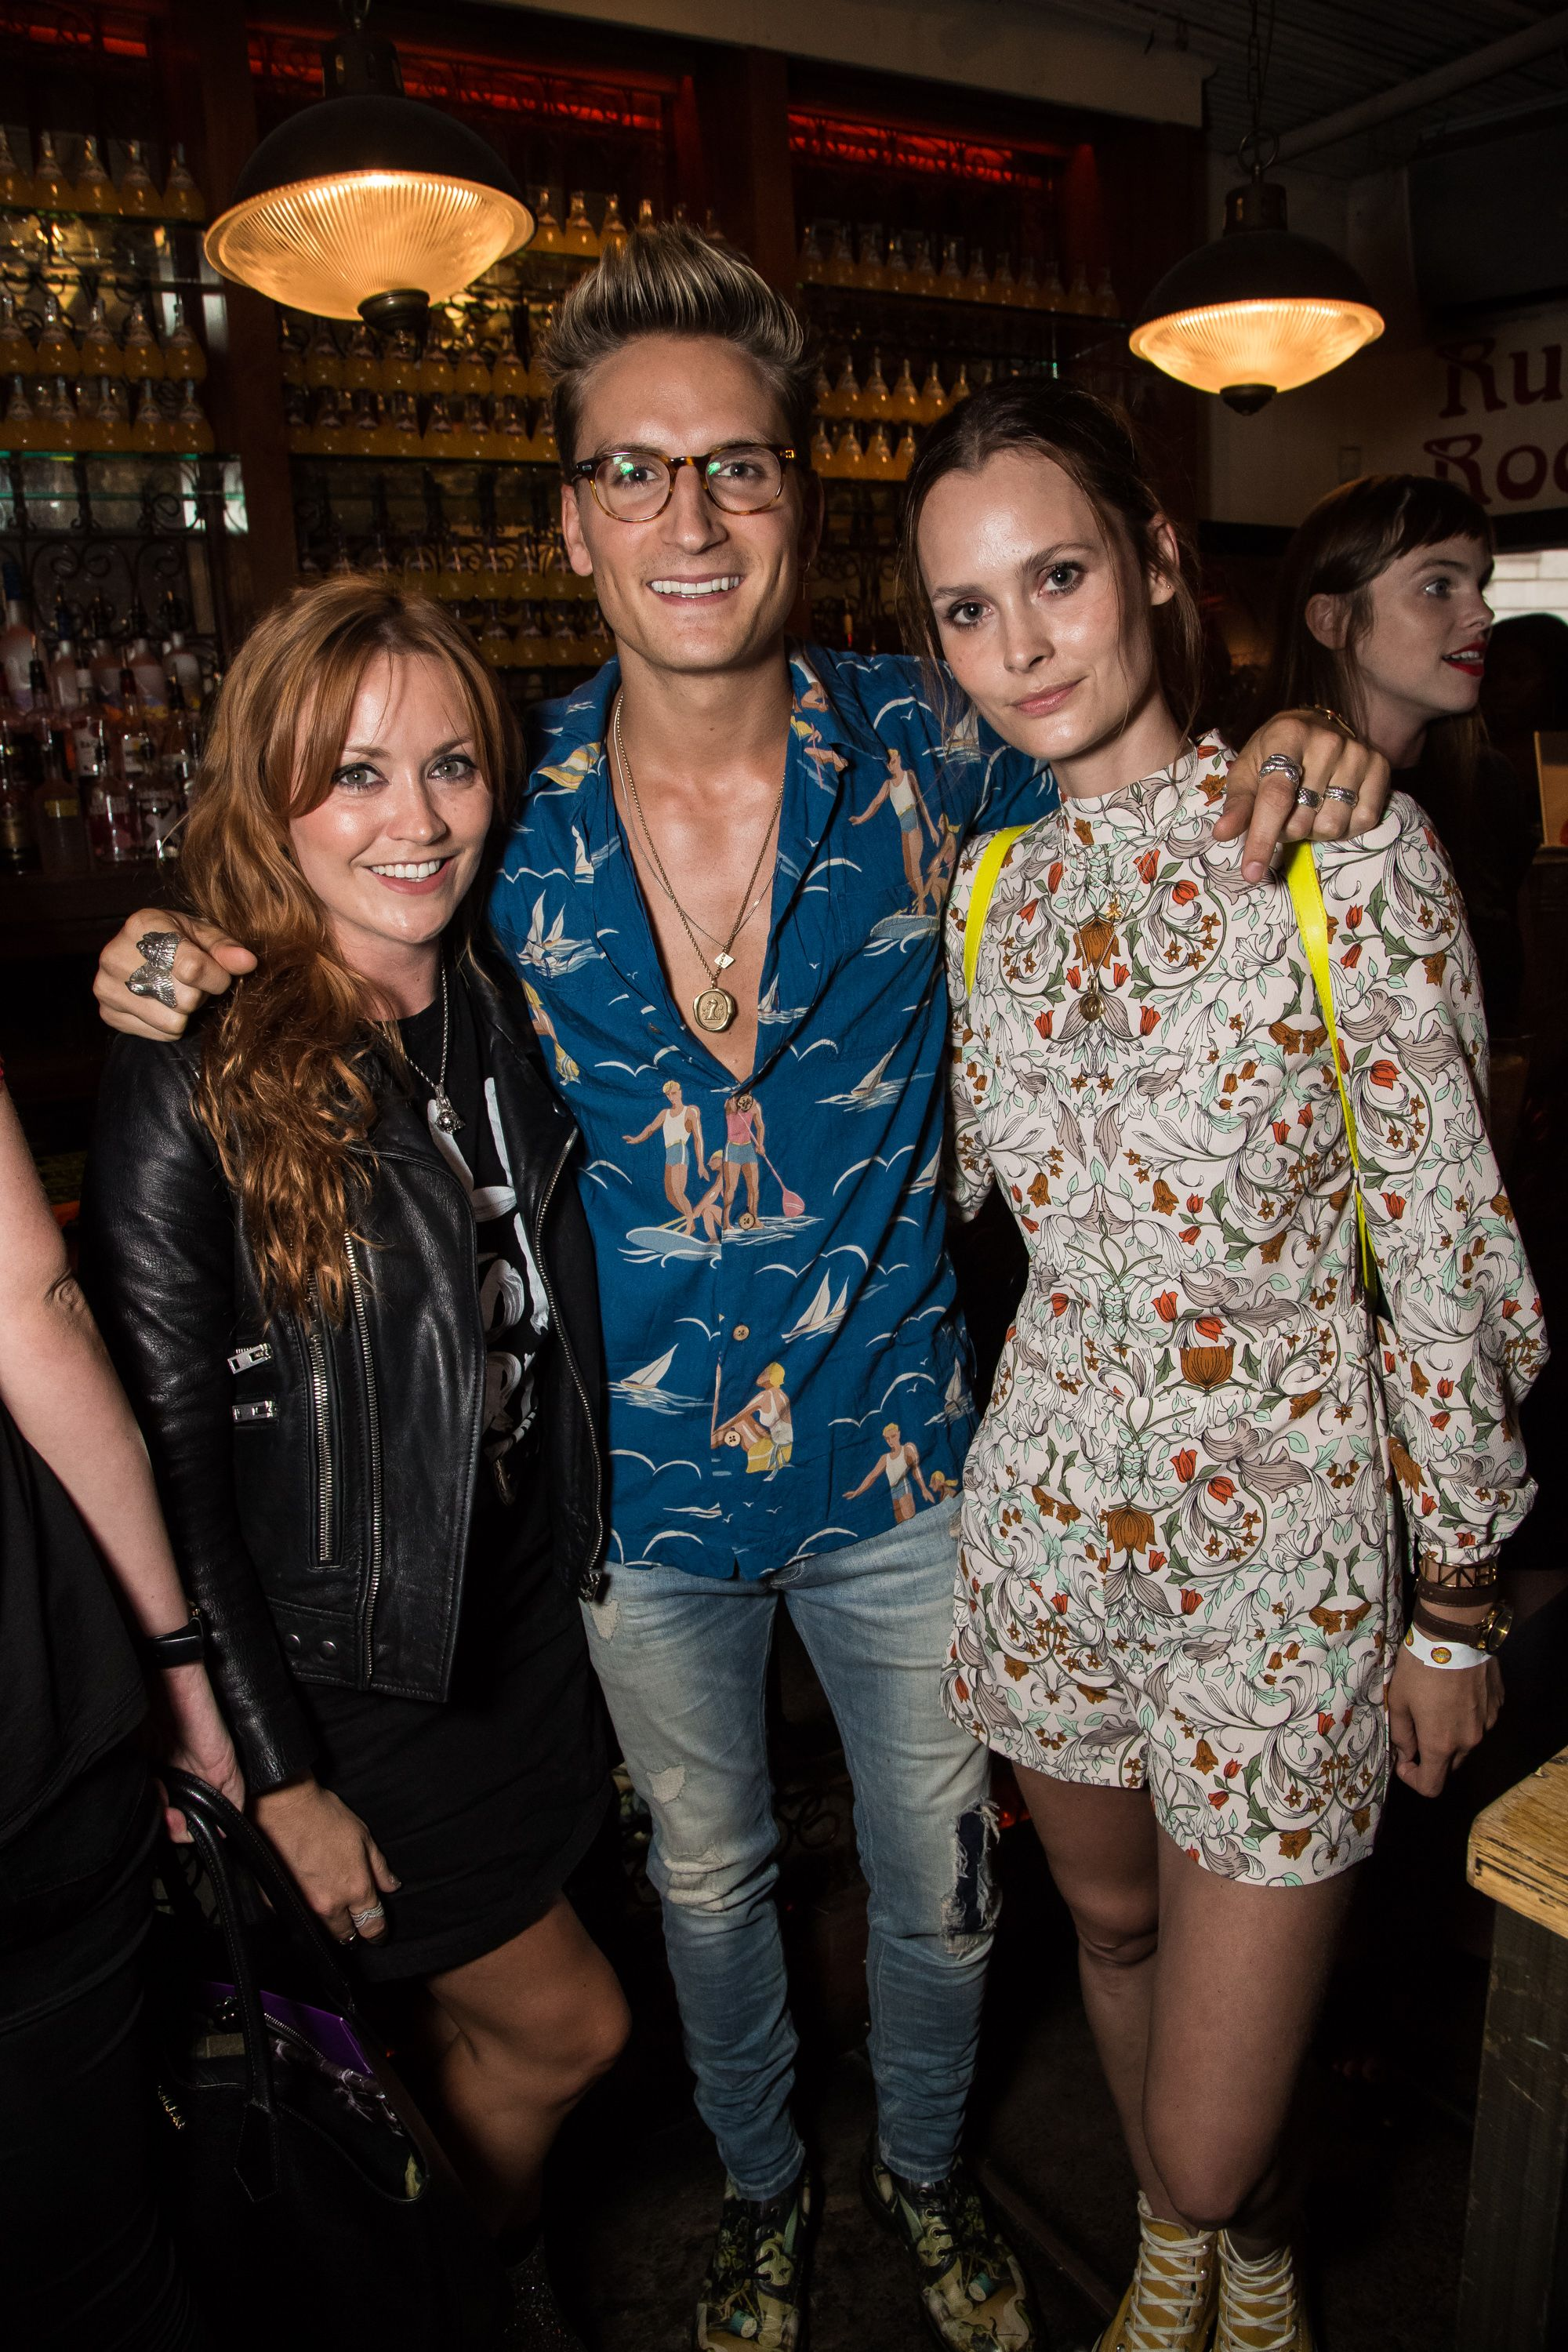 Arielle Free, Oliver Proudlock and Charlotte de Carle Photo by Vianney Le - Orangina #ShakeLaVie party, London, UK - 27 Jul 2016